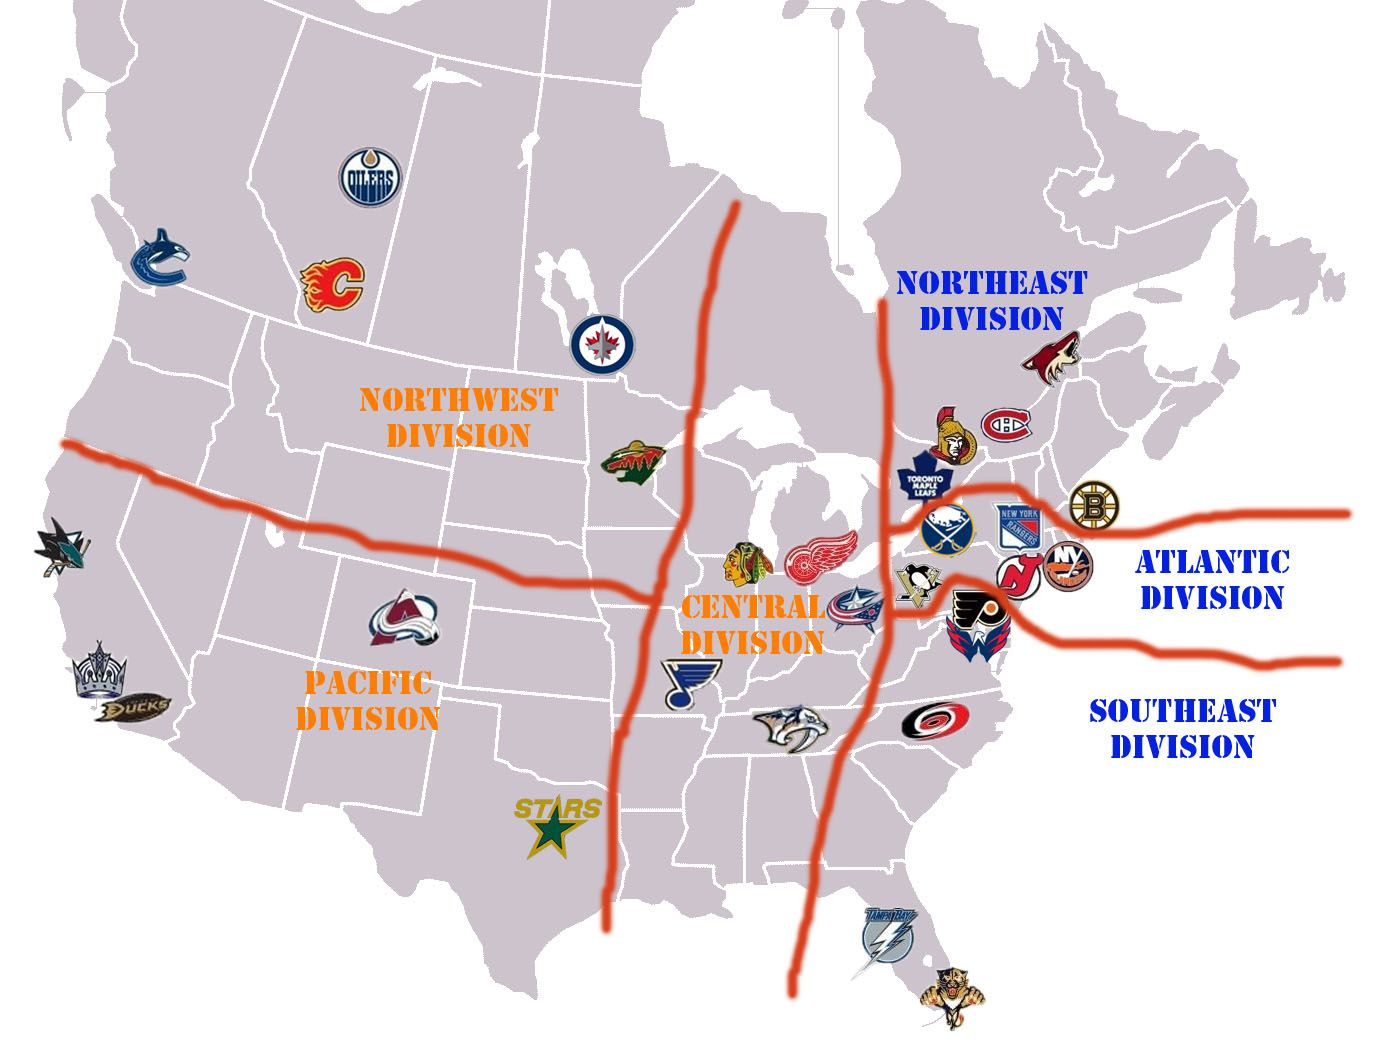 Enlisting New Troops Scholarships Attract Diverse Athletes The - Map of us cities with football teams